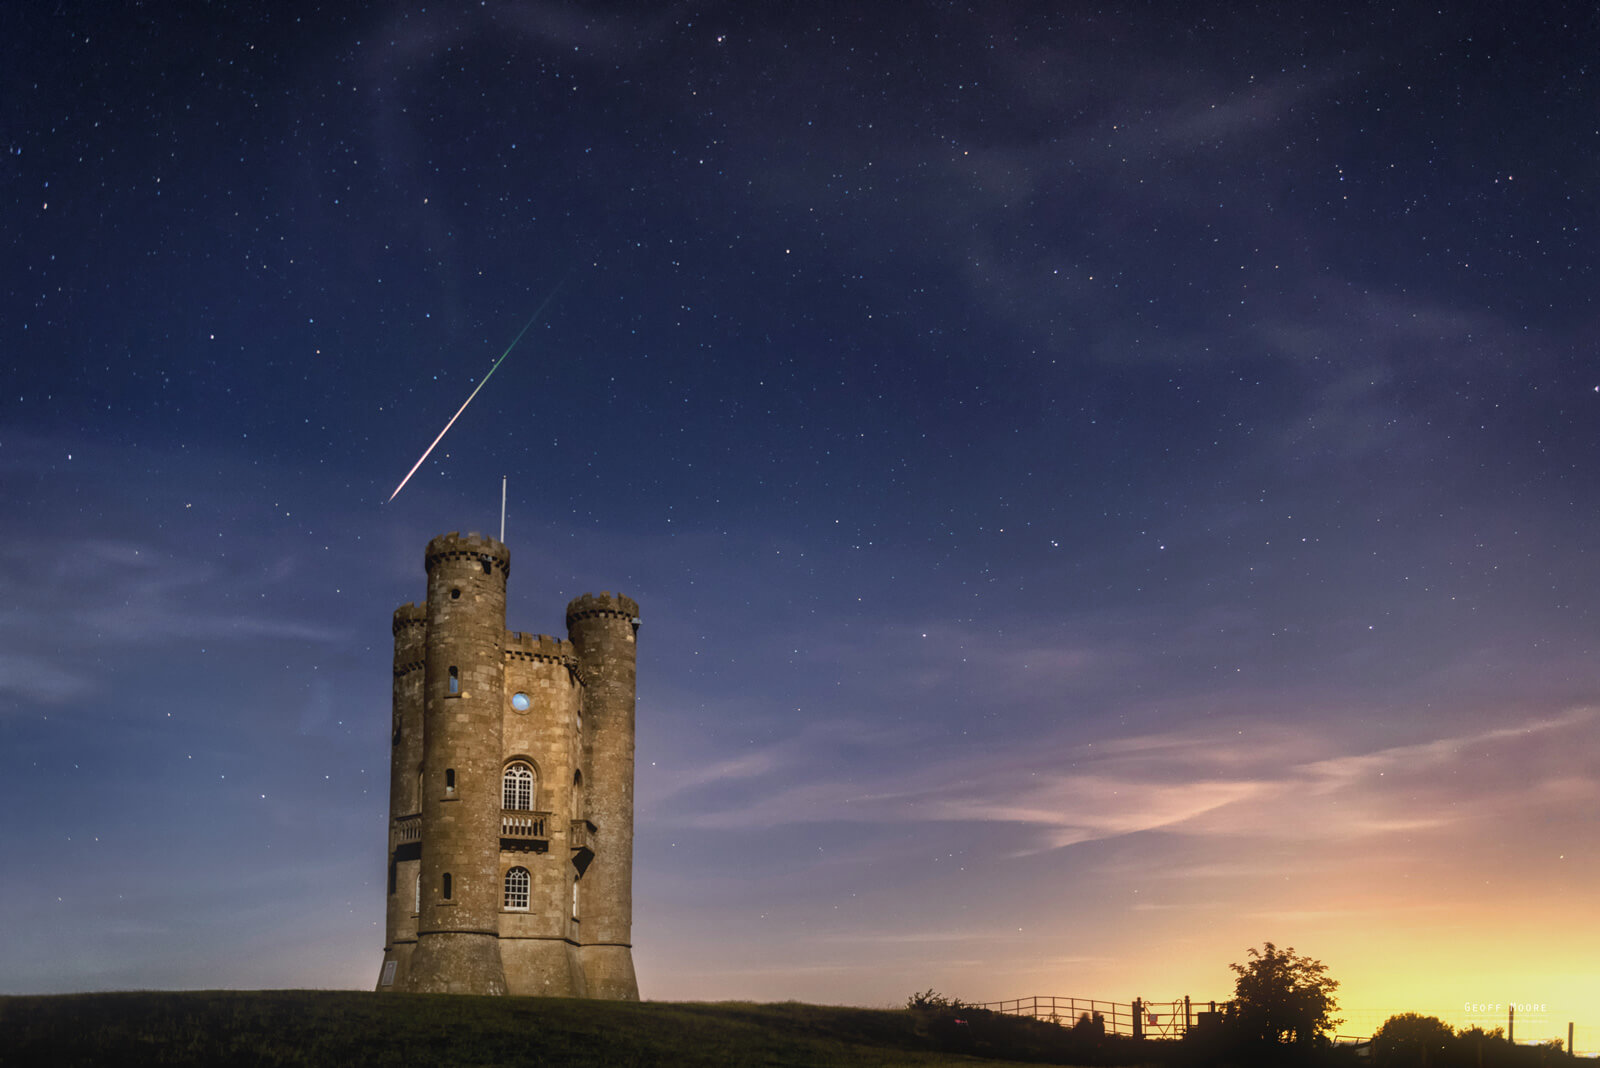 Persid Meteor Shower over Broadway Tower, Worcestershire UK